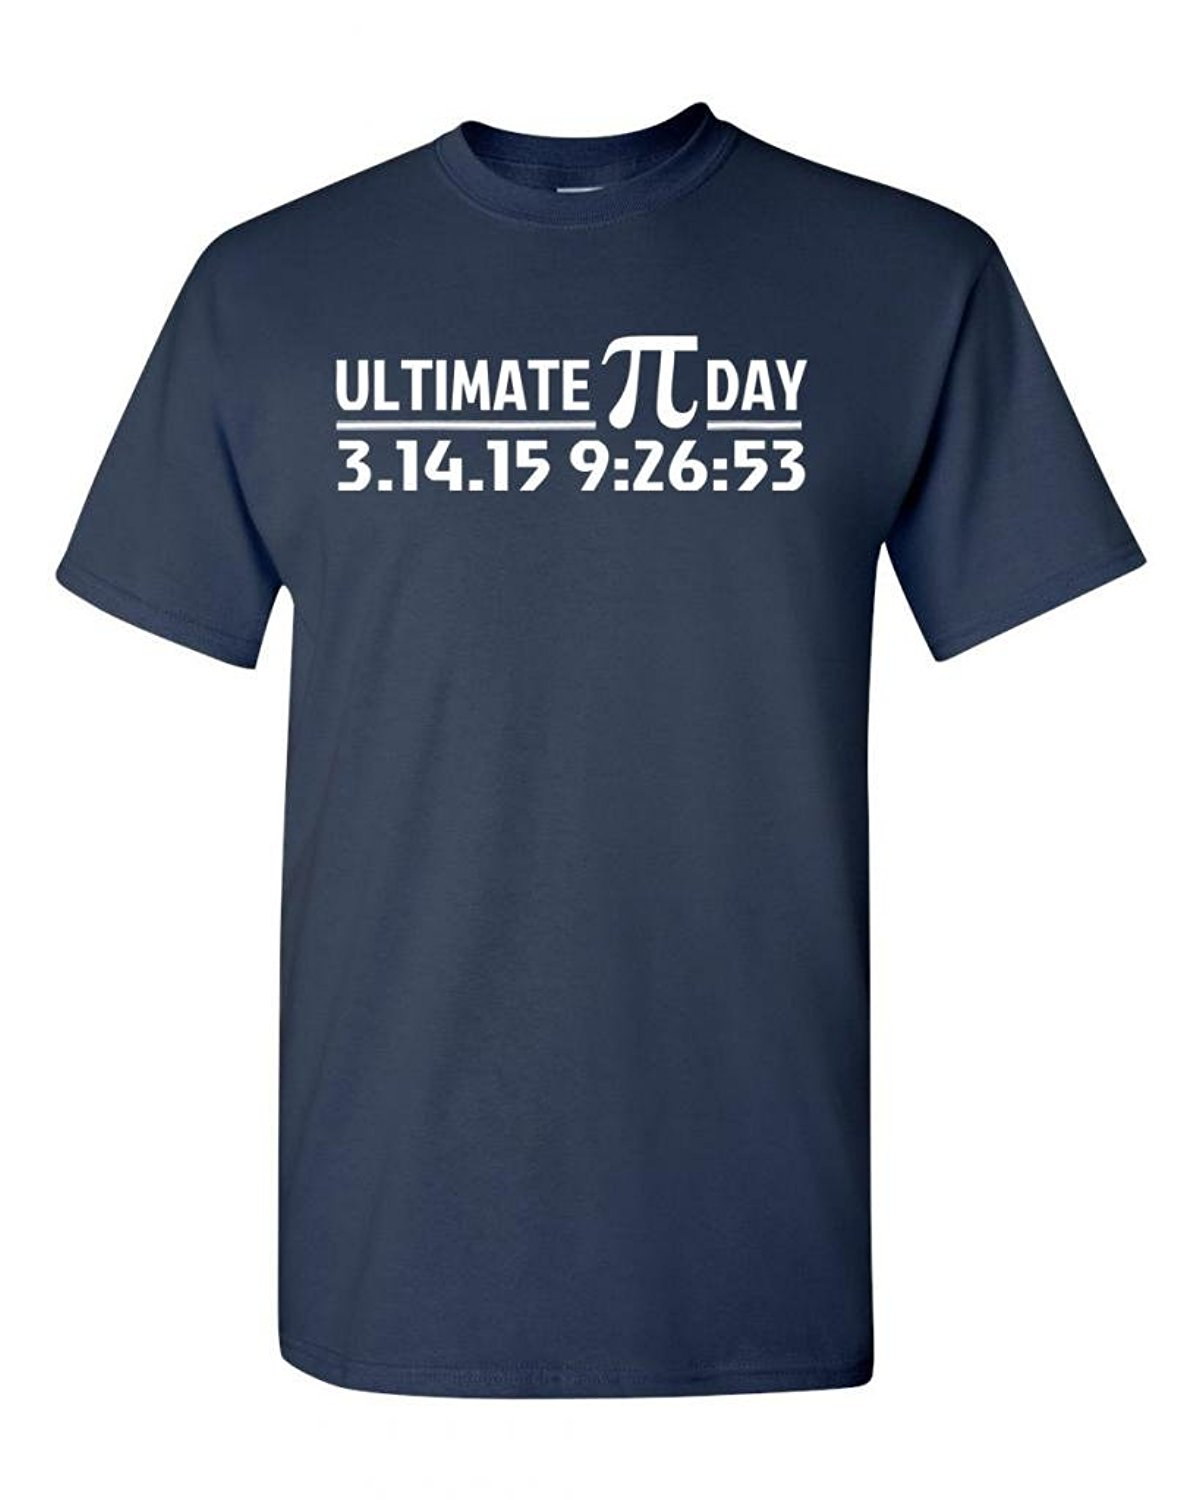 Ultimate PI Day 3.14 2015 Math Geek DT Adult T-Shirt Tee